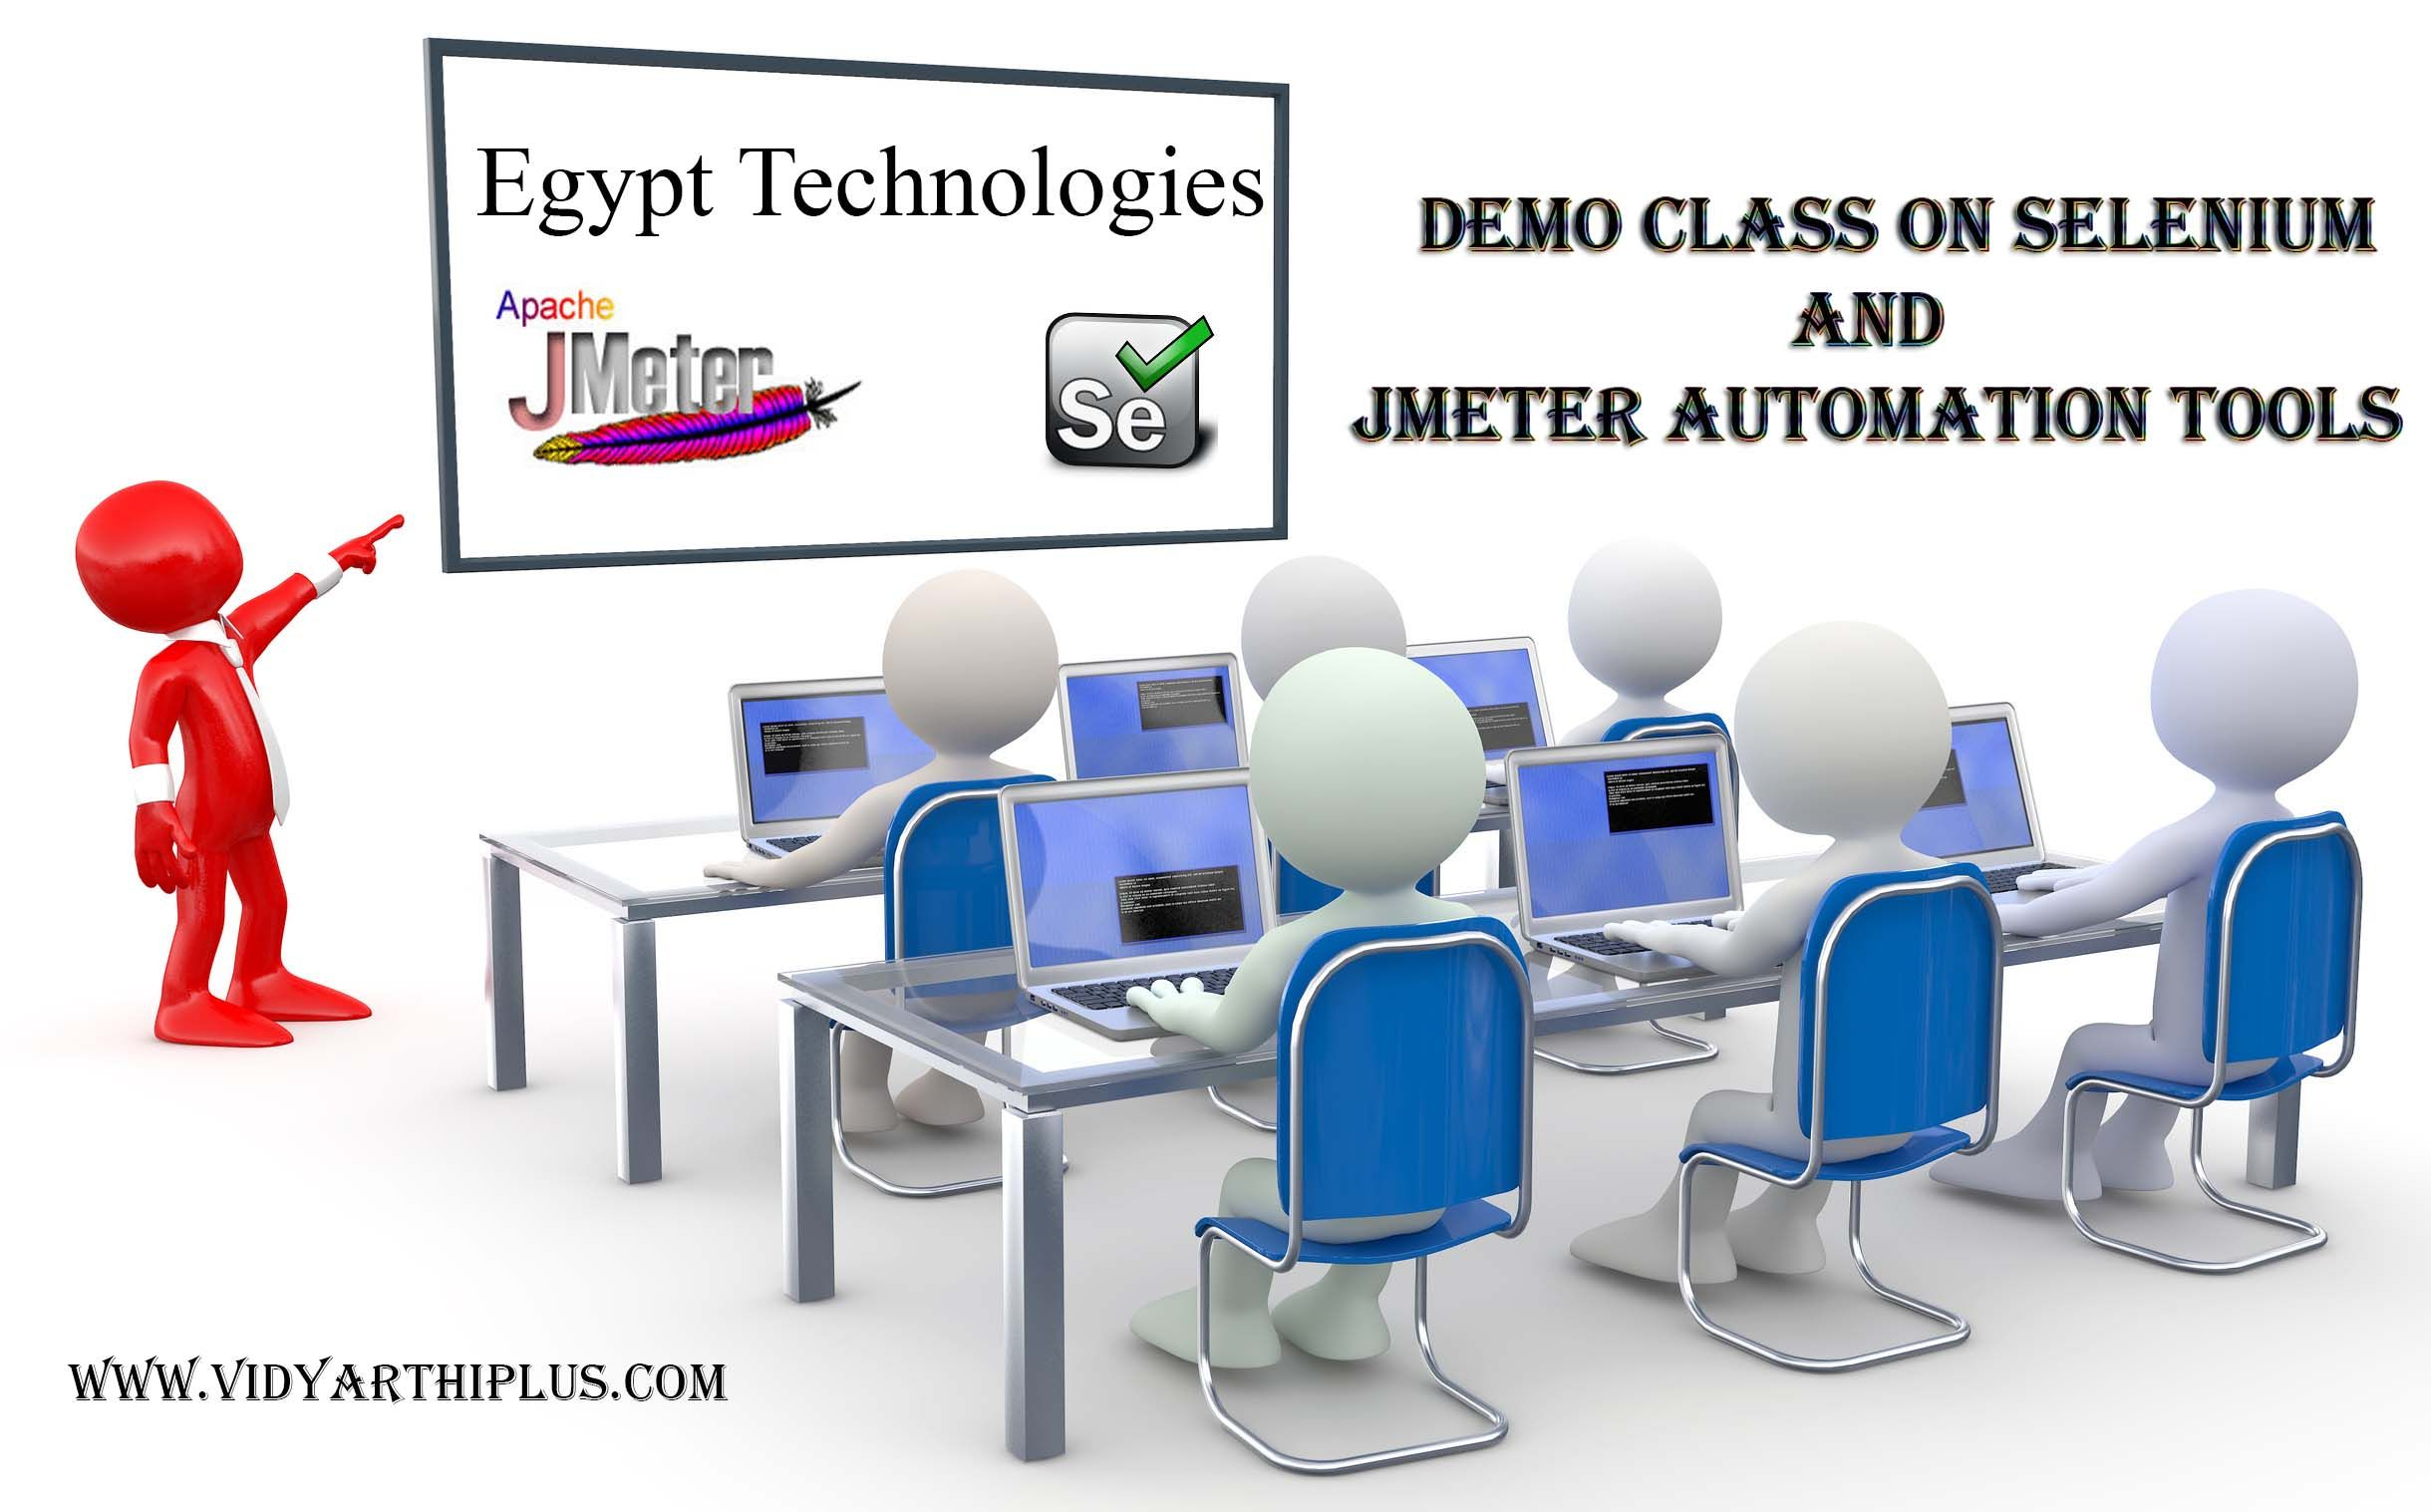 Demo Class on Selenium and JMeter Automation tools 2014